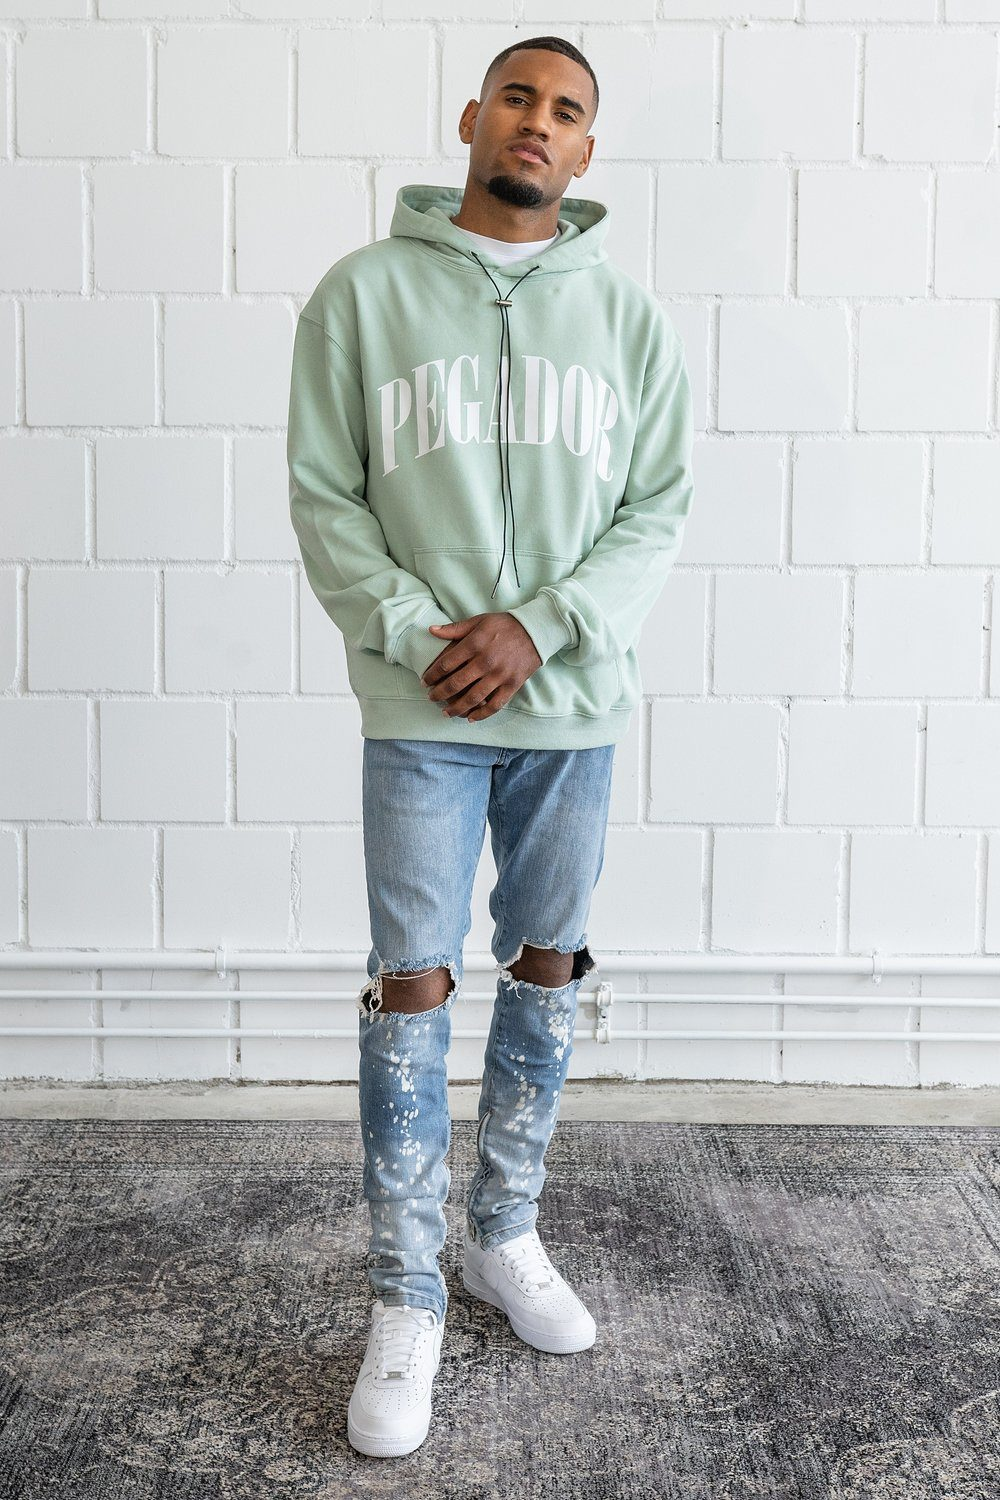 Cali Oversized Hoodie Washed Mint Hoodies PEGADOR